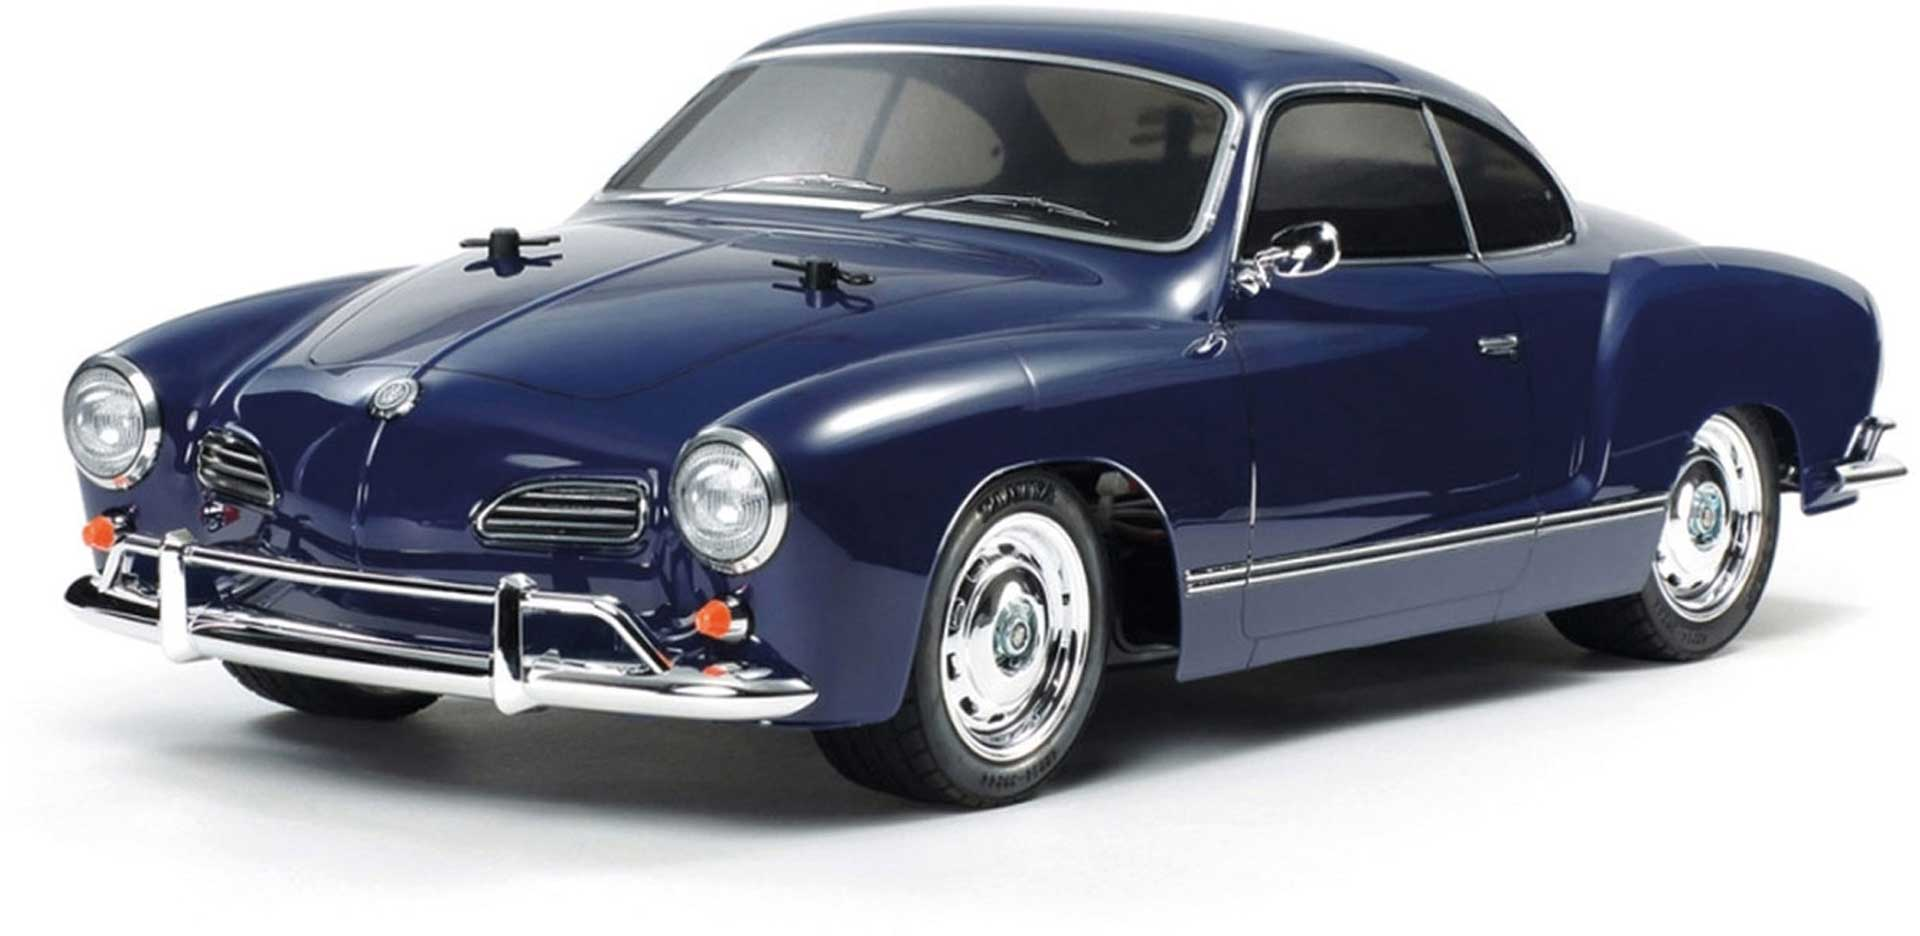 TAMIYA VW KARMANN GHIA (M-06L) 1/10 EP KIT 2WD